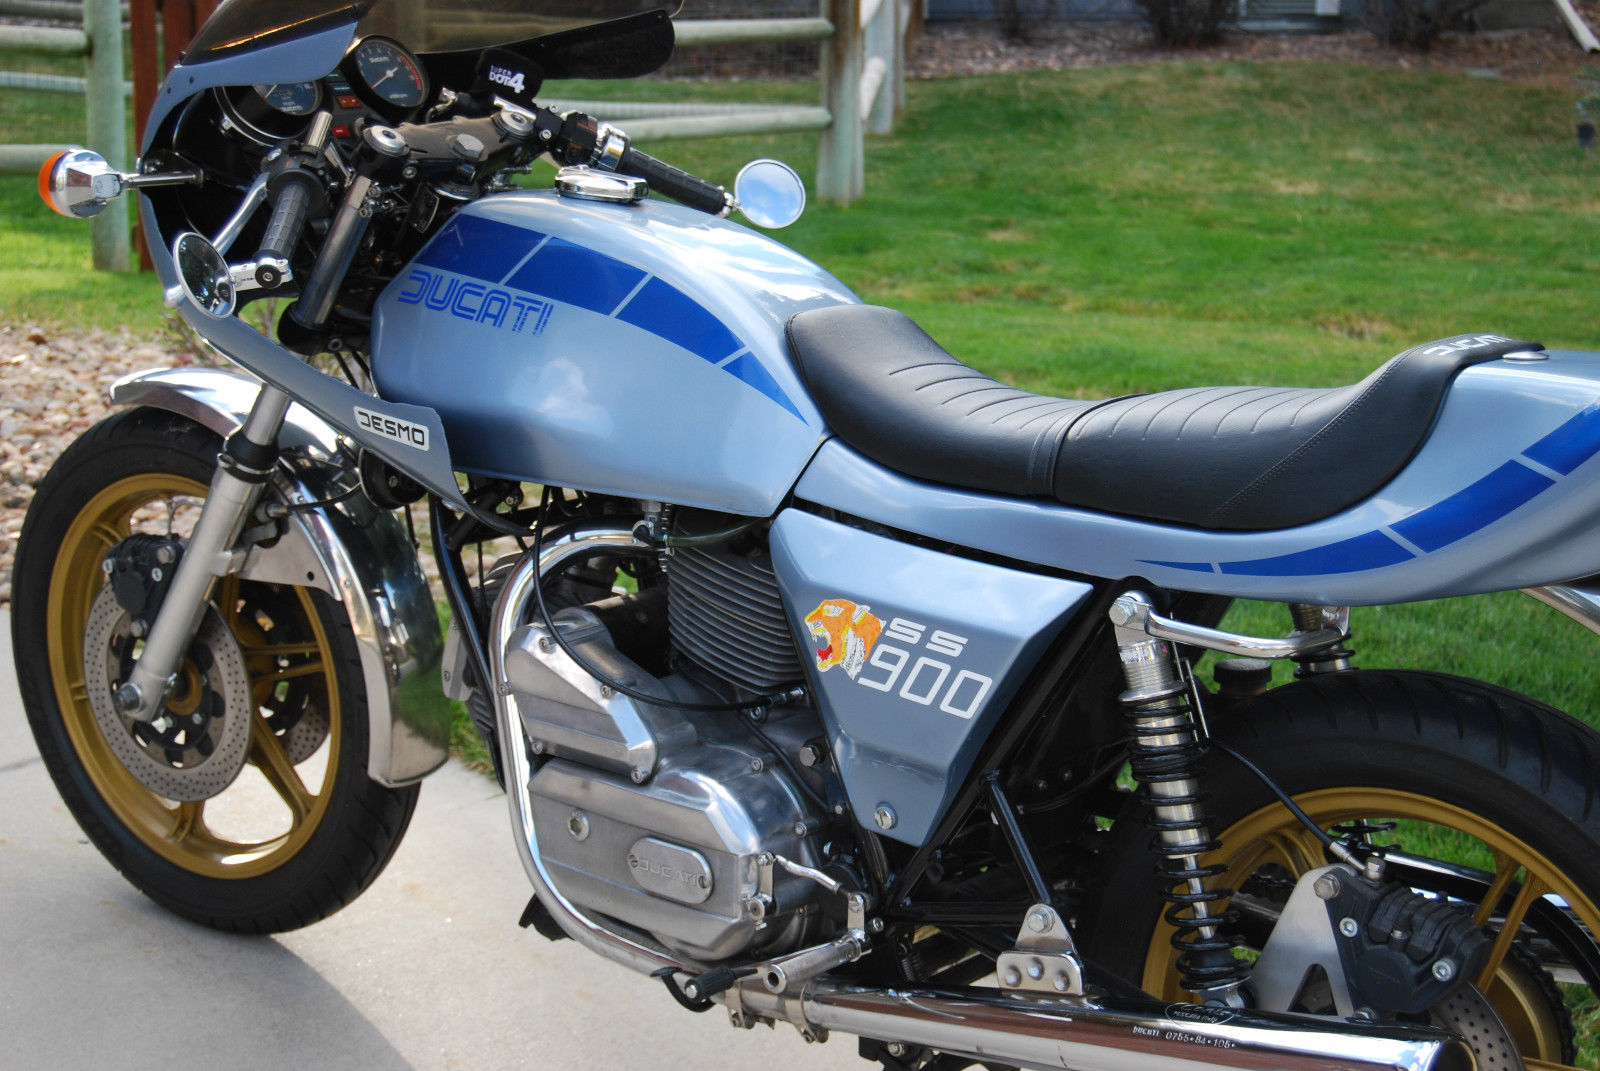 Ducati Darmah - 1980 - Engine Cases, Footrest, Side panel and Frame.